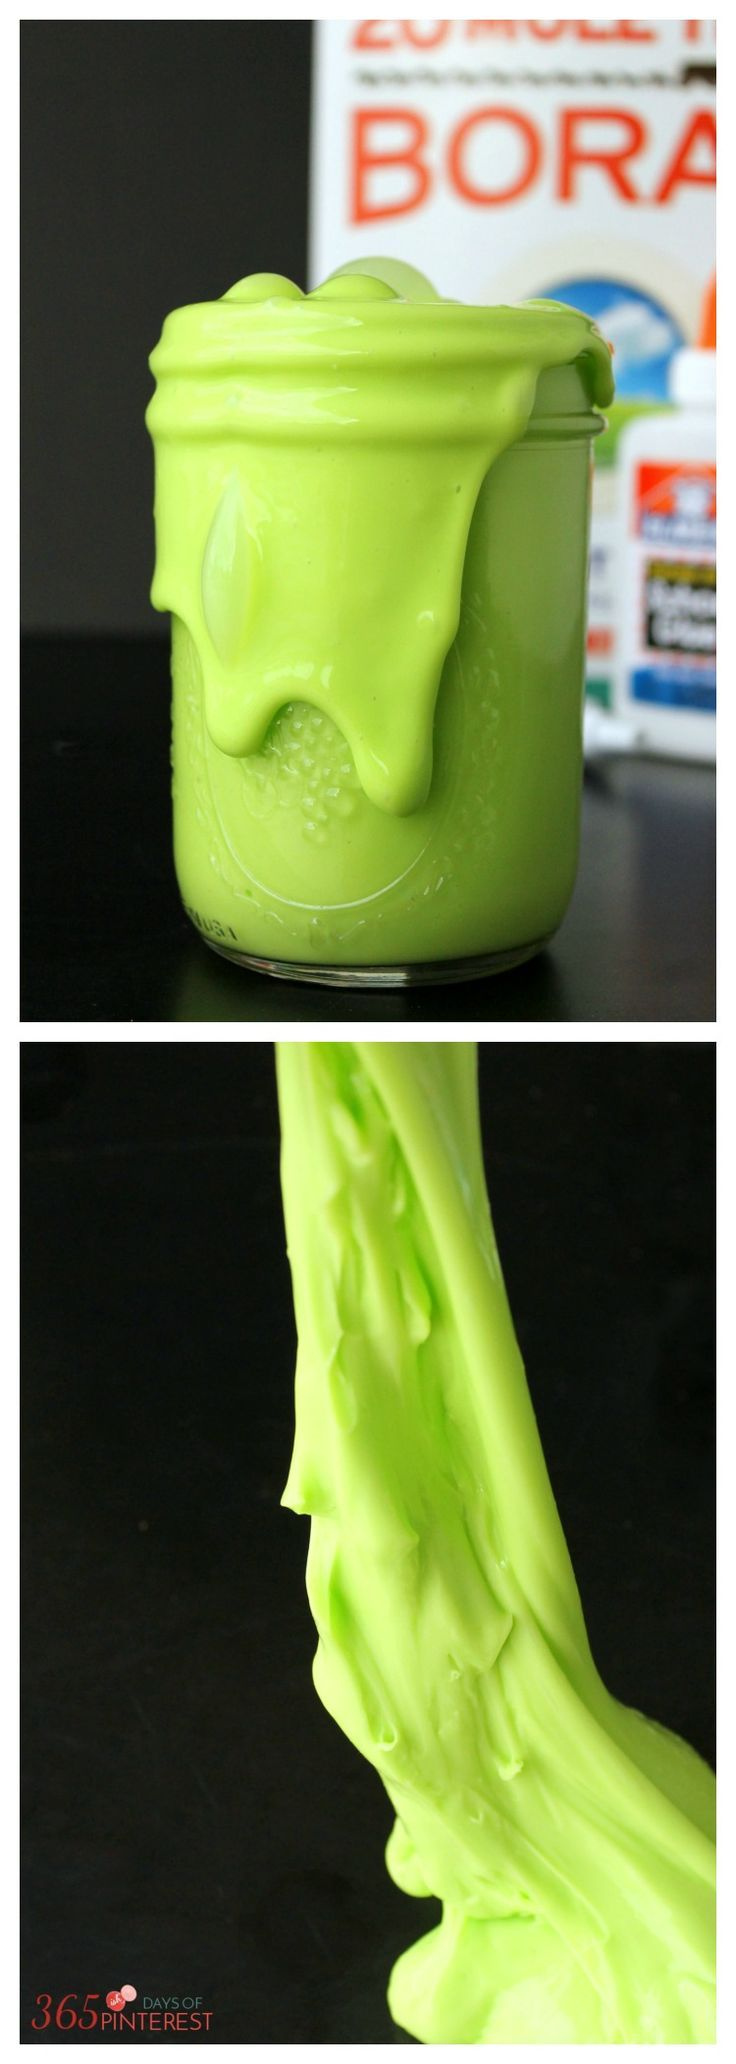 This homemade slime is so easy to do and definitely mess-free! You only need three ingredients (plus water) and you probably already have them sitting around your house!